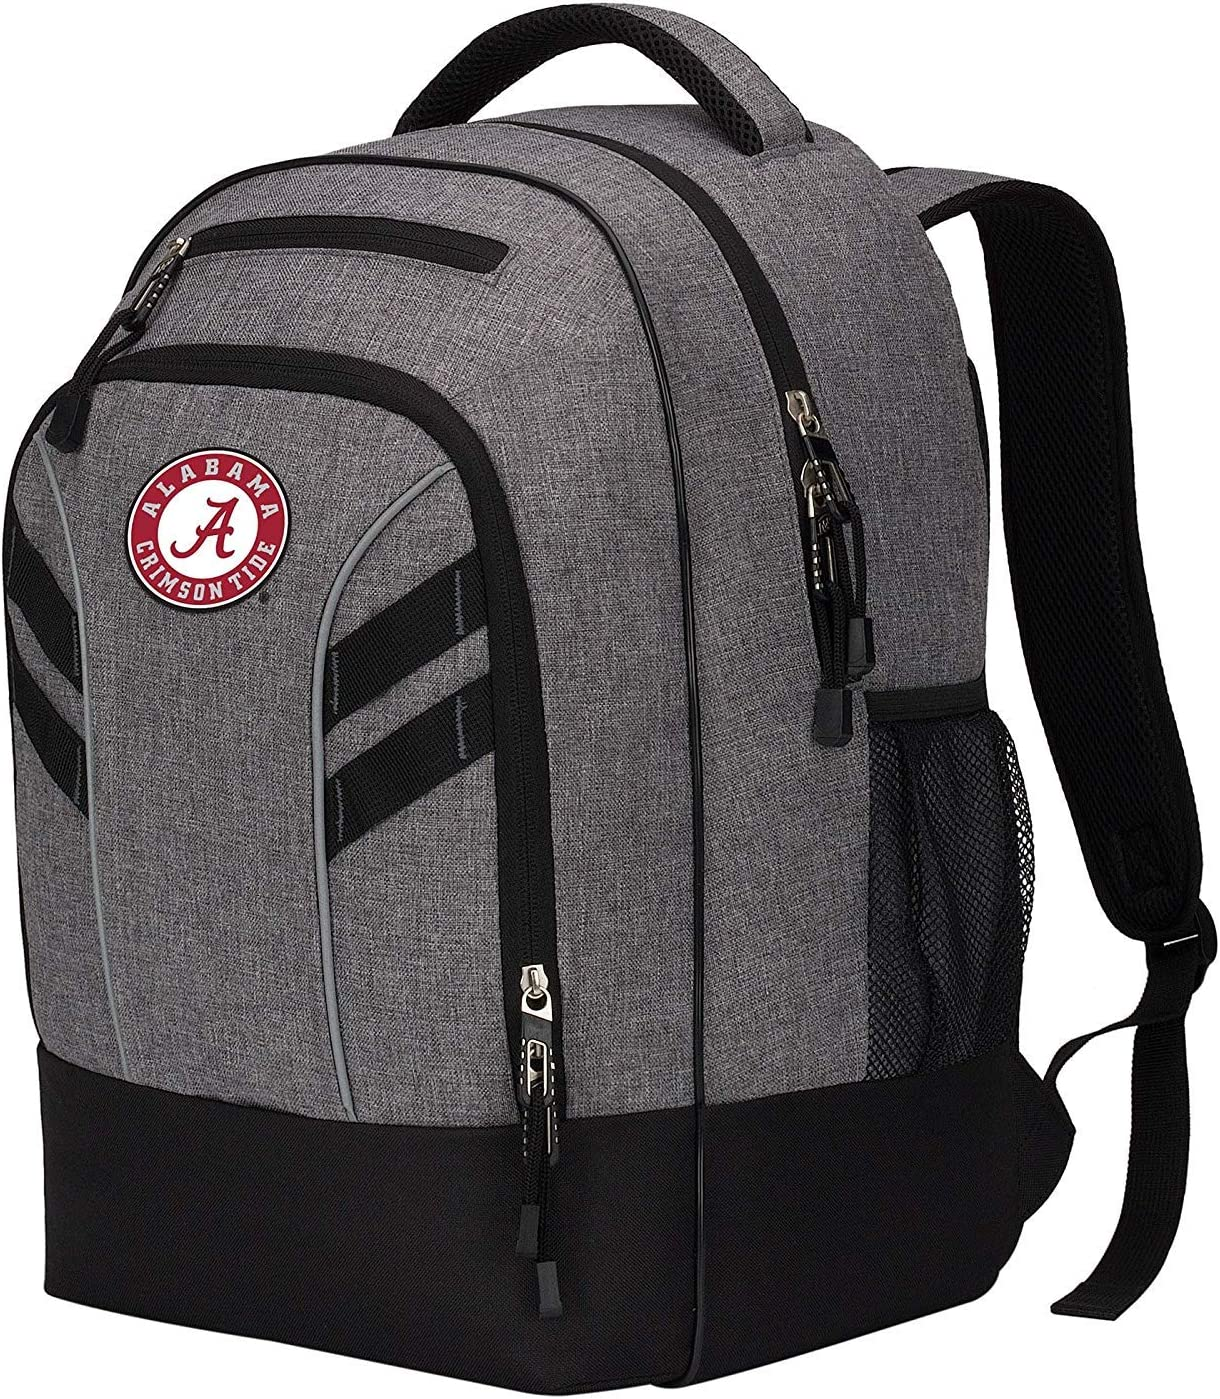 """The Northwest Company Officially Licensed NCAA Razor Backpack, 19"""", Multi Color"""